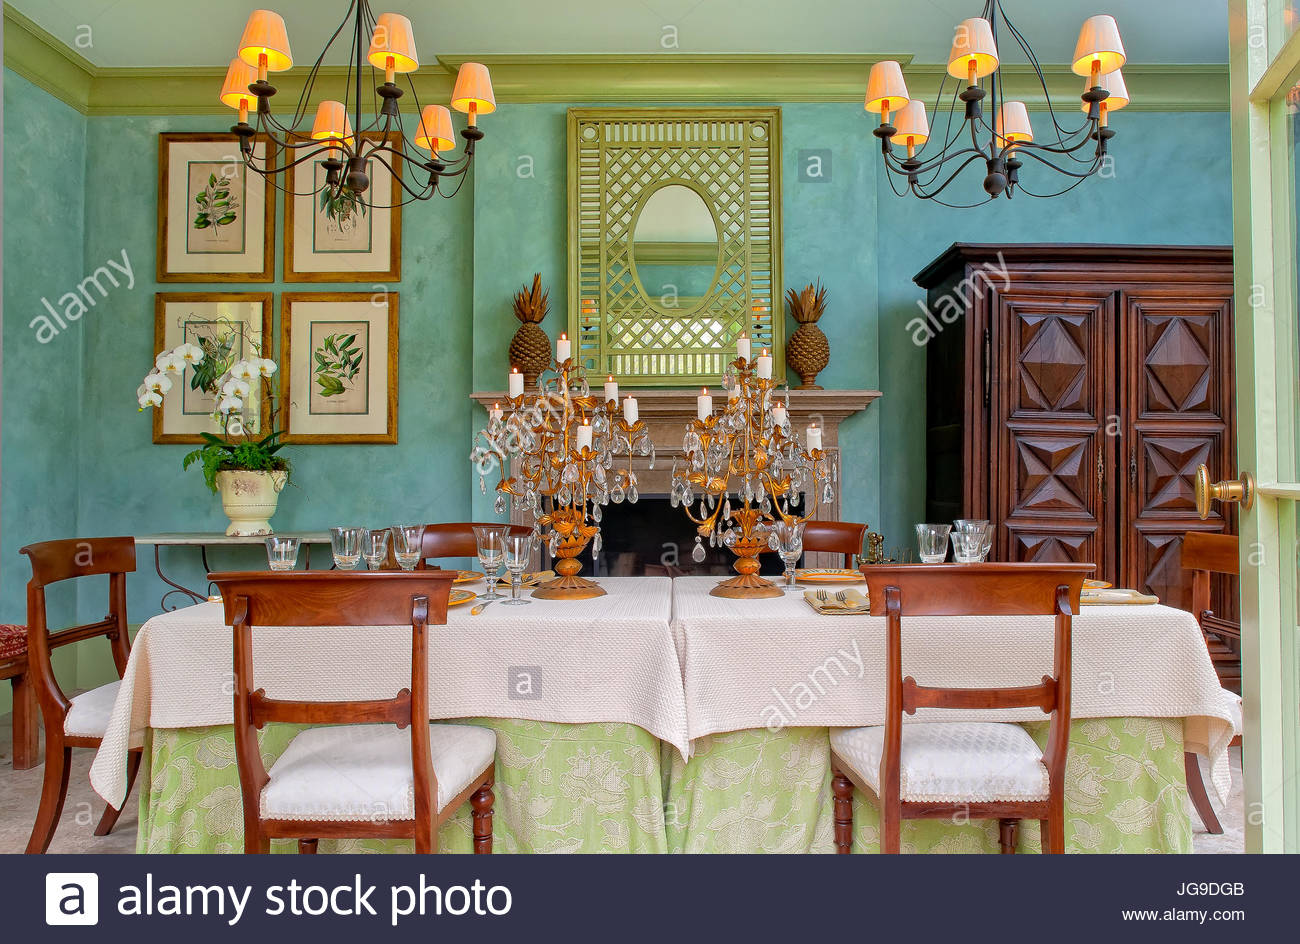 Dining Area, Aqua Walls, Chandeliers, Antique Chairs, Armoire, Fireplace,  Moss Green Crown Molding, Pineapple Decor, Table Set